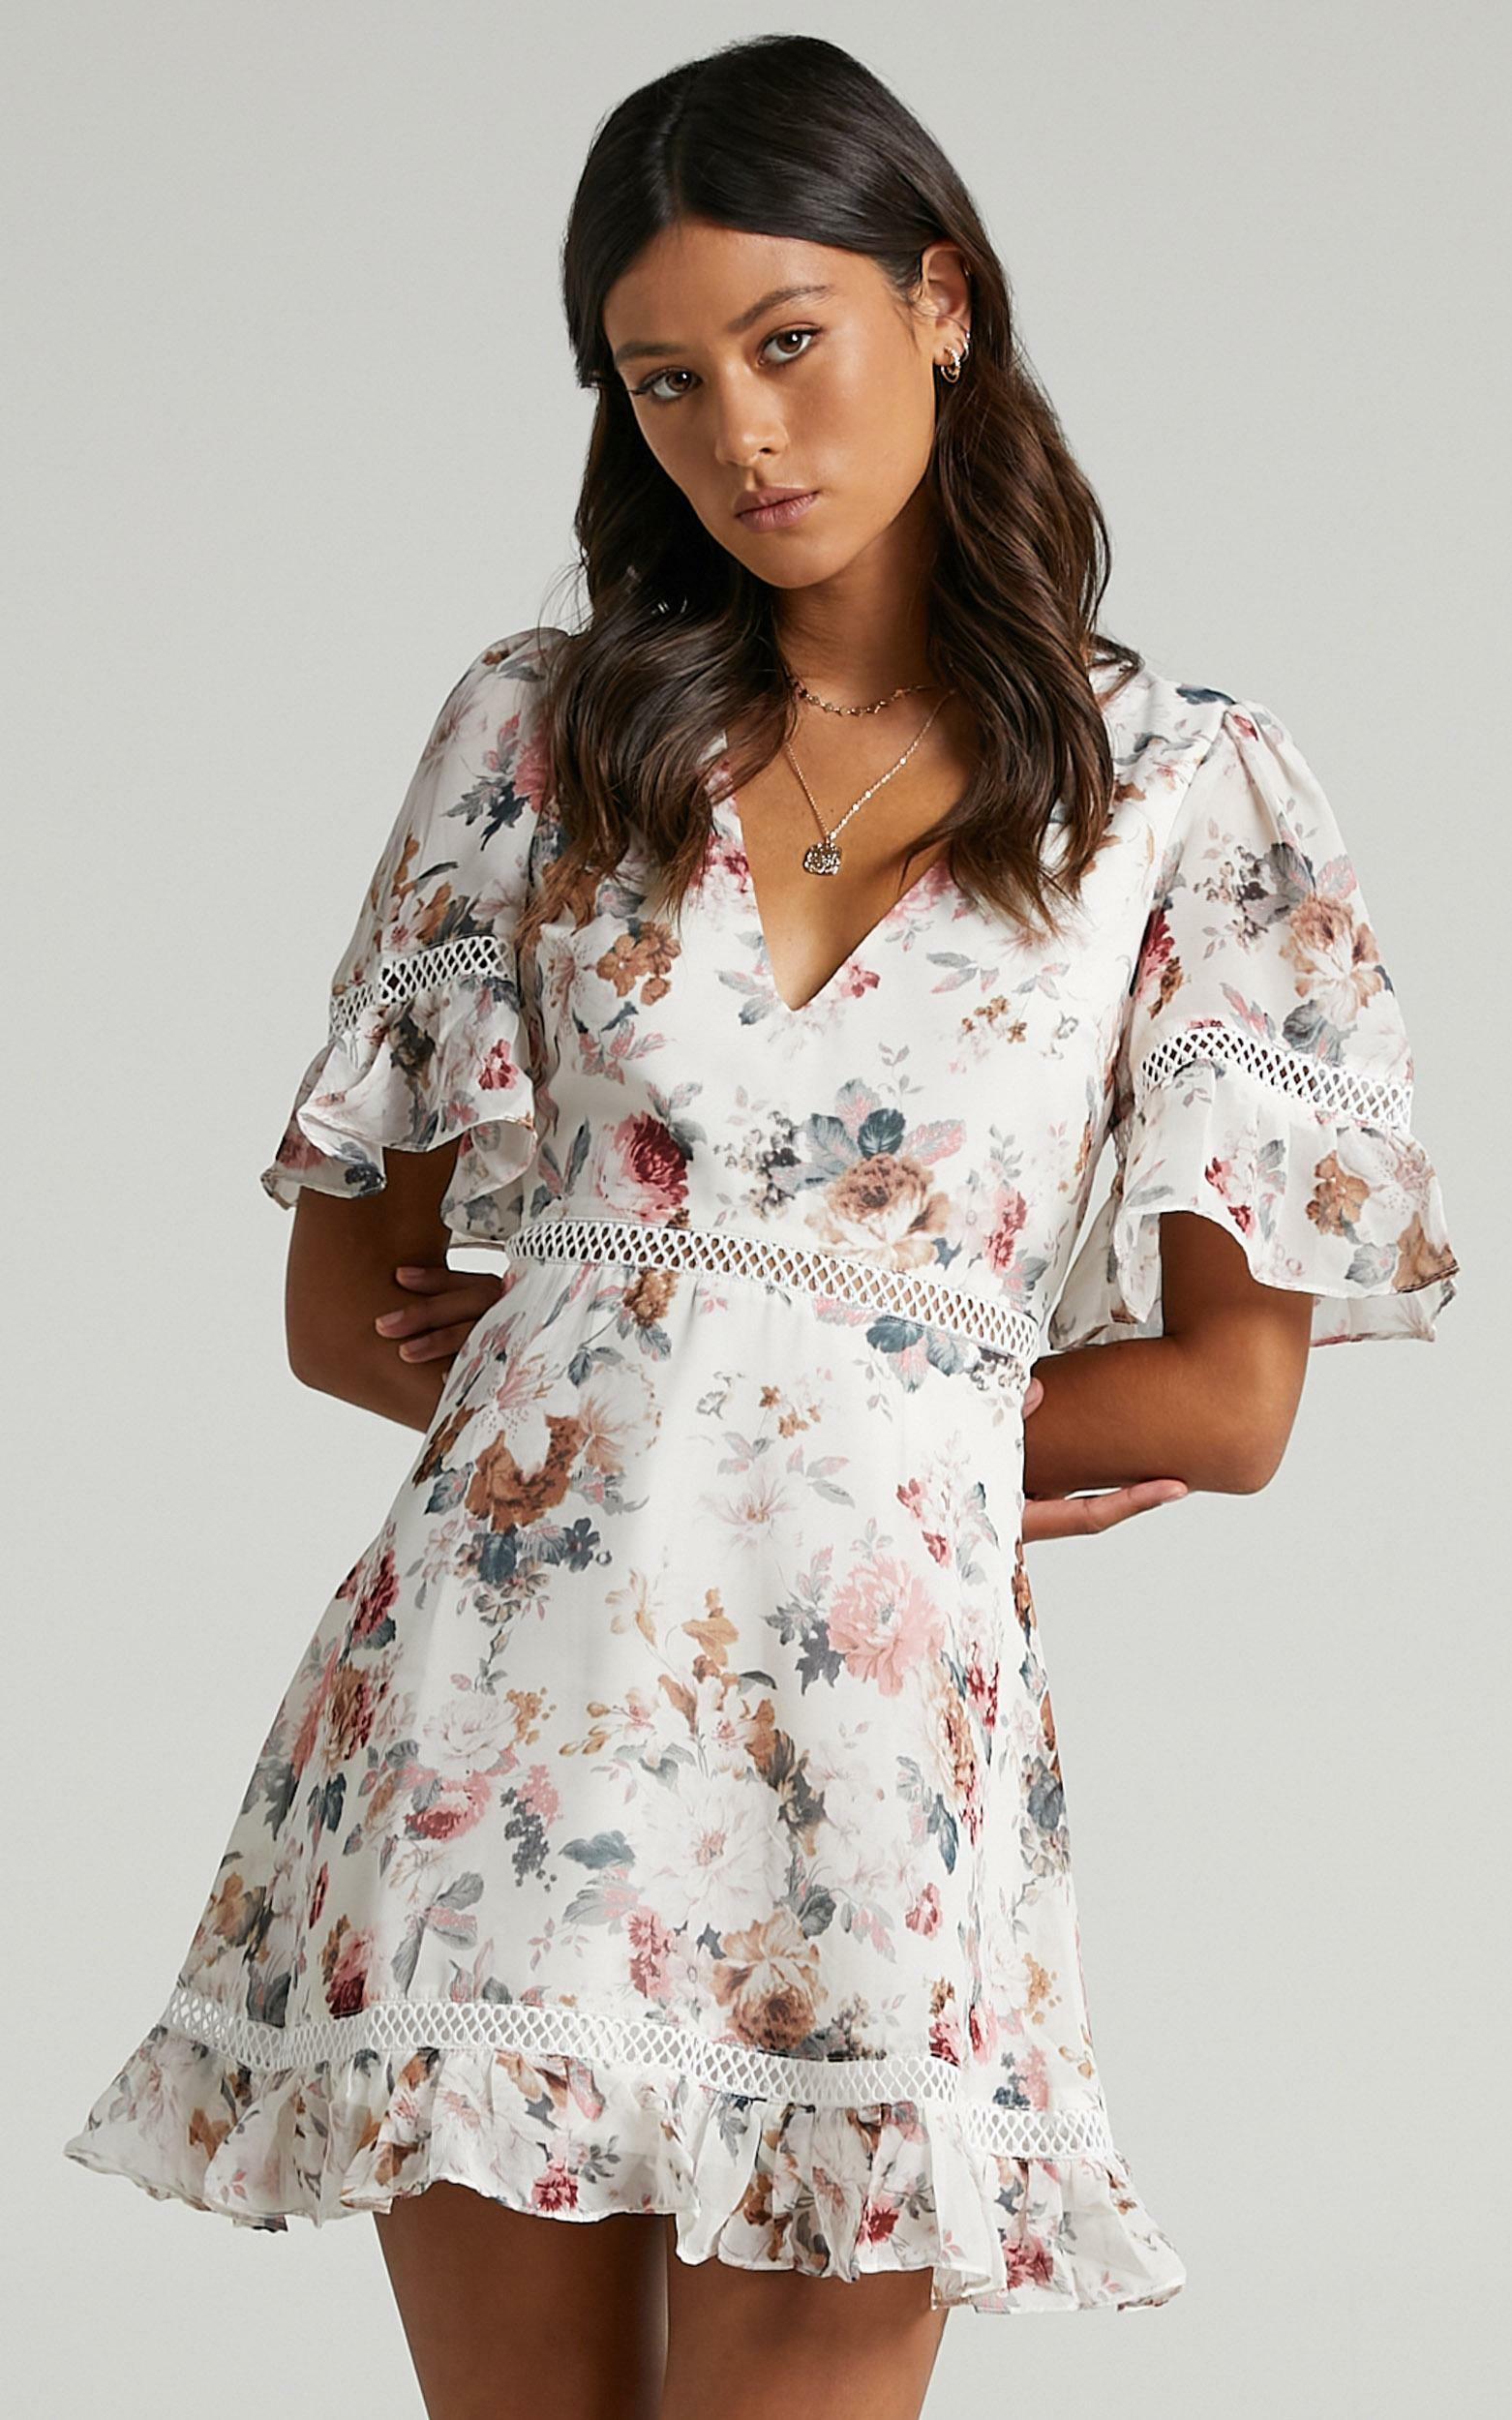 My Darkest Night Dress in White Floral - 20, WHT1, hi-res image number null